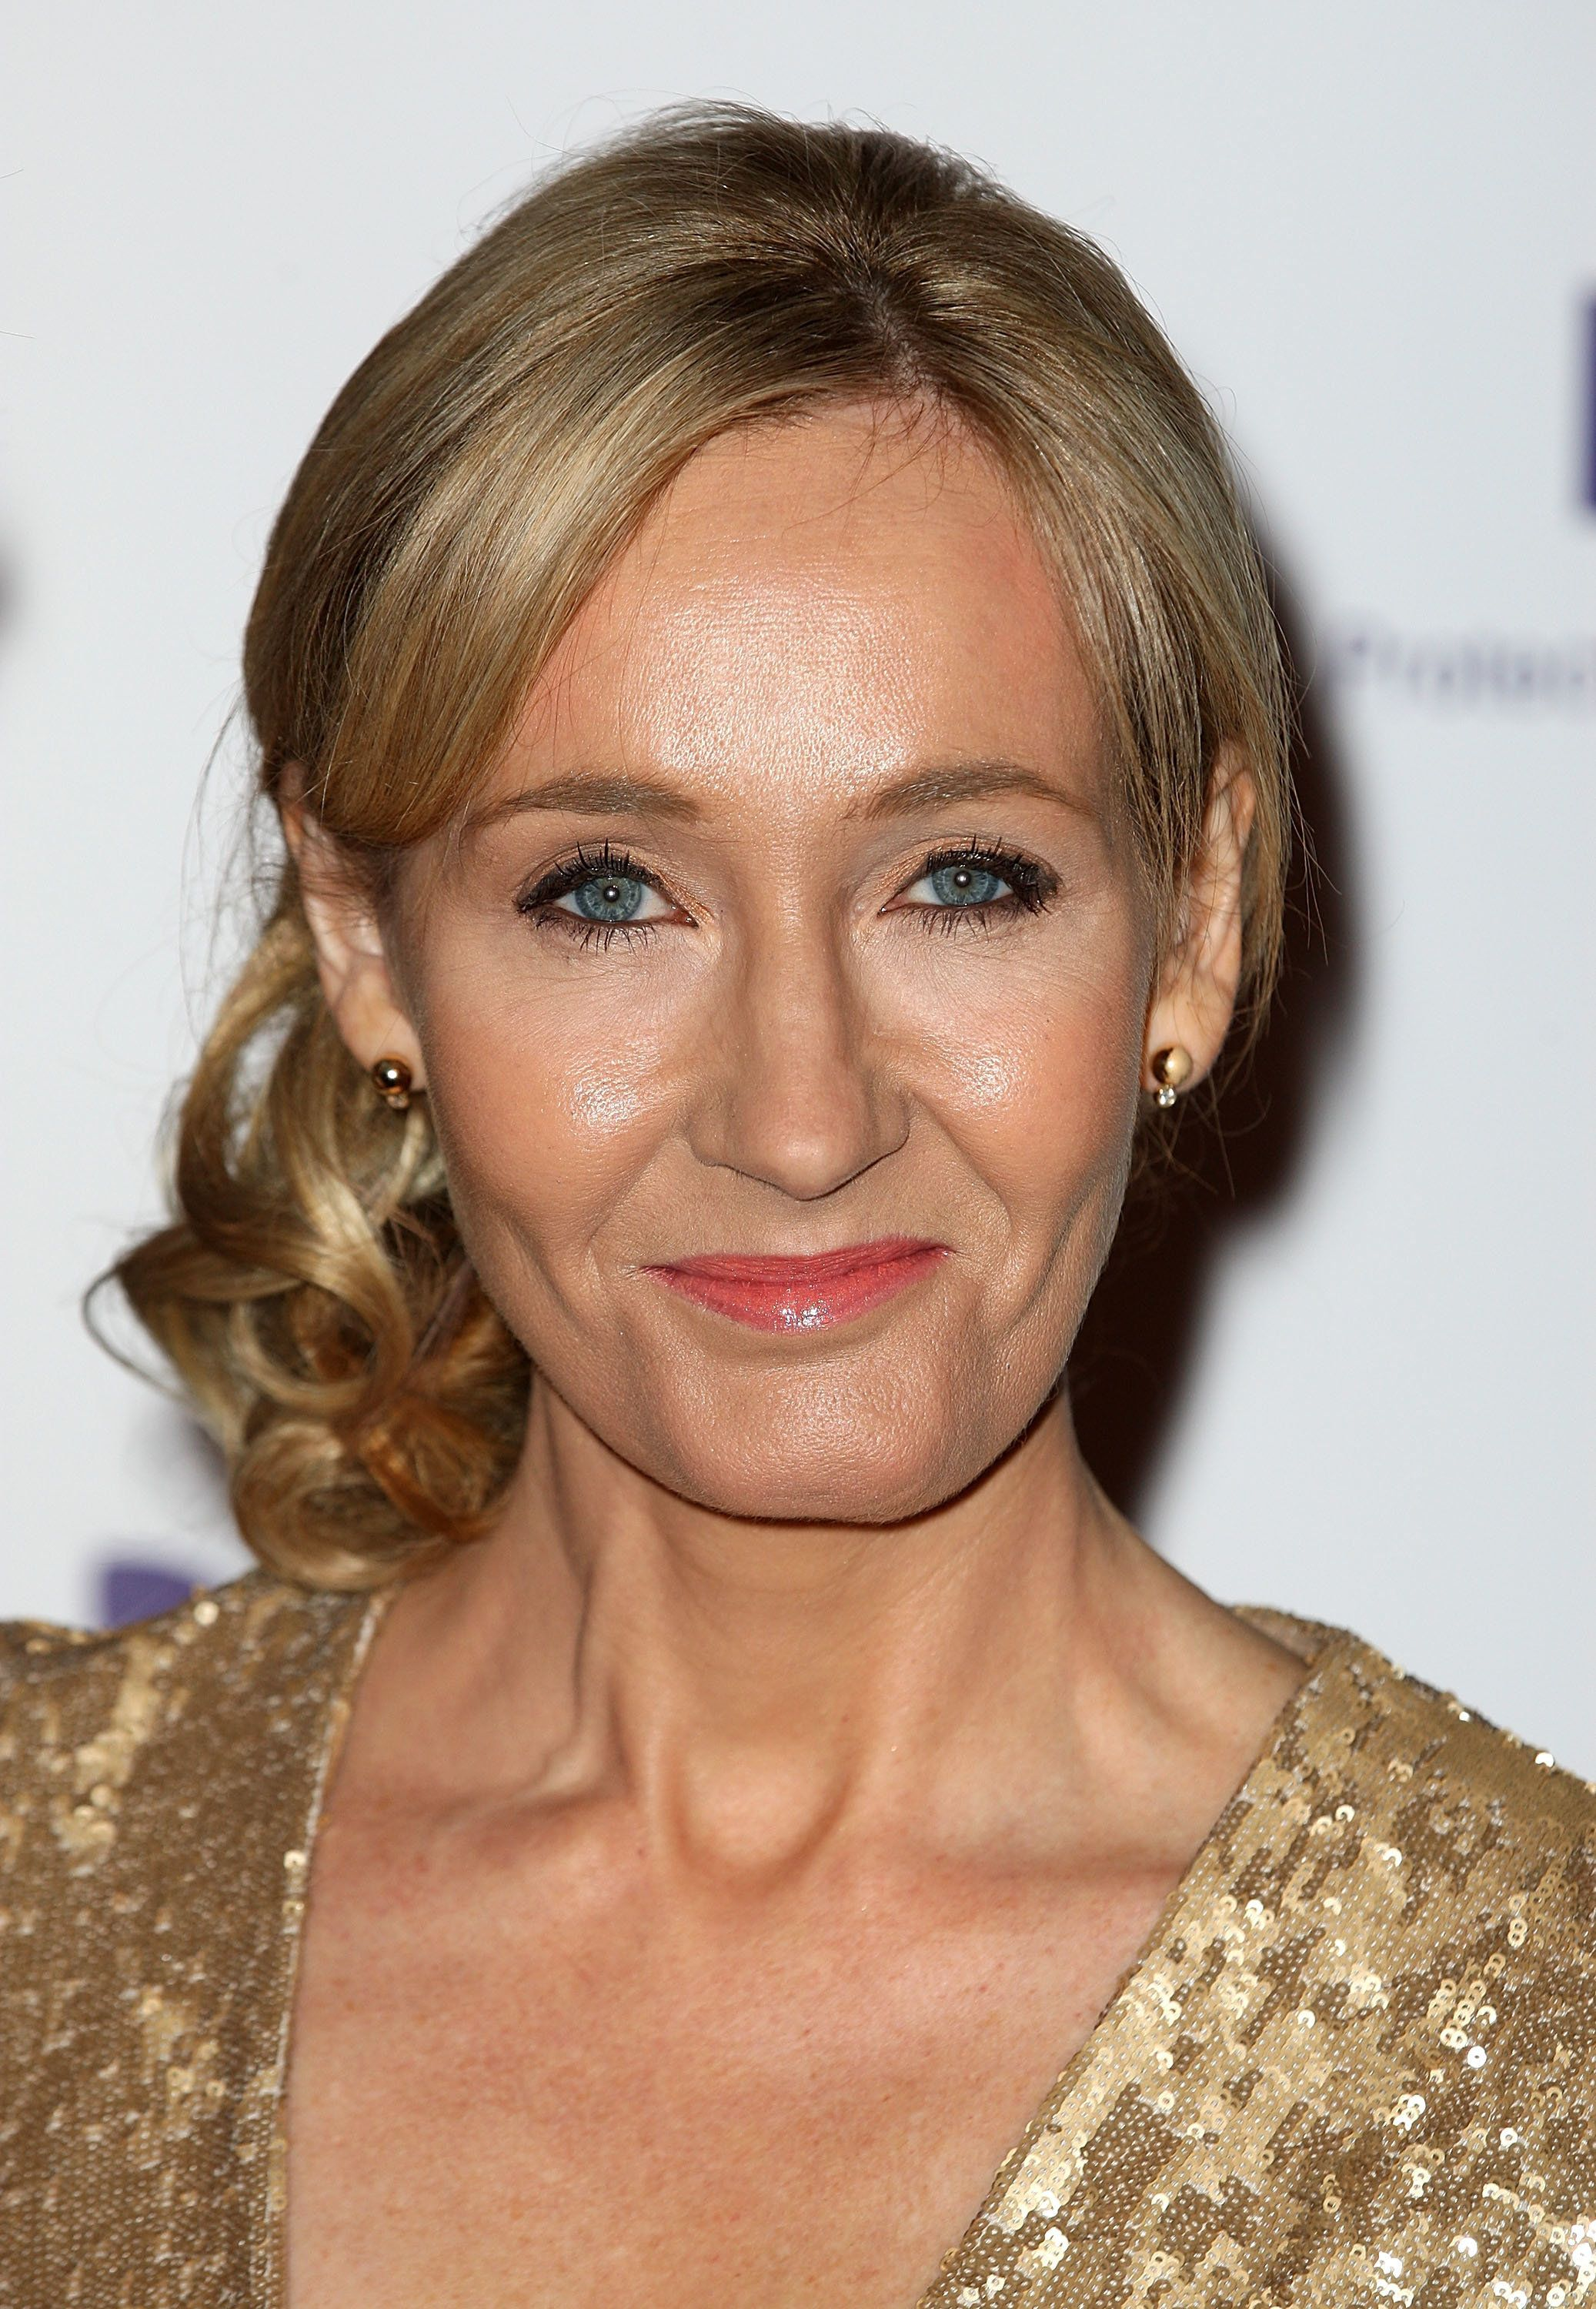 J.K. Rowling Dishes Out 'Harry Potter' Themed Parenting